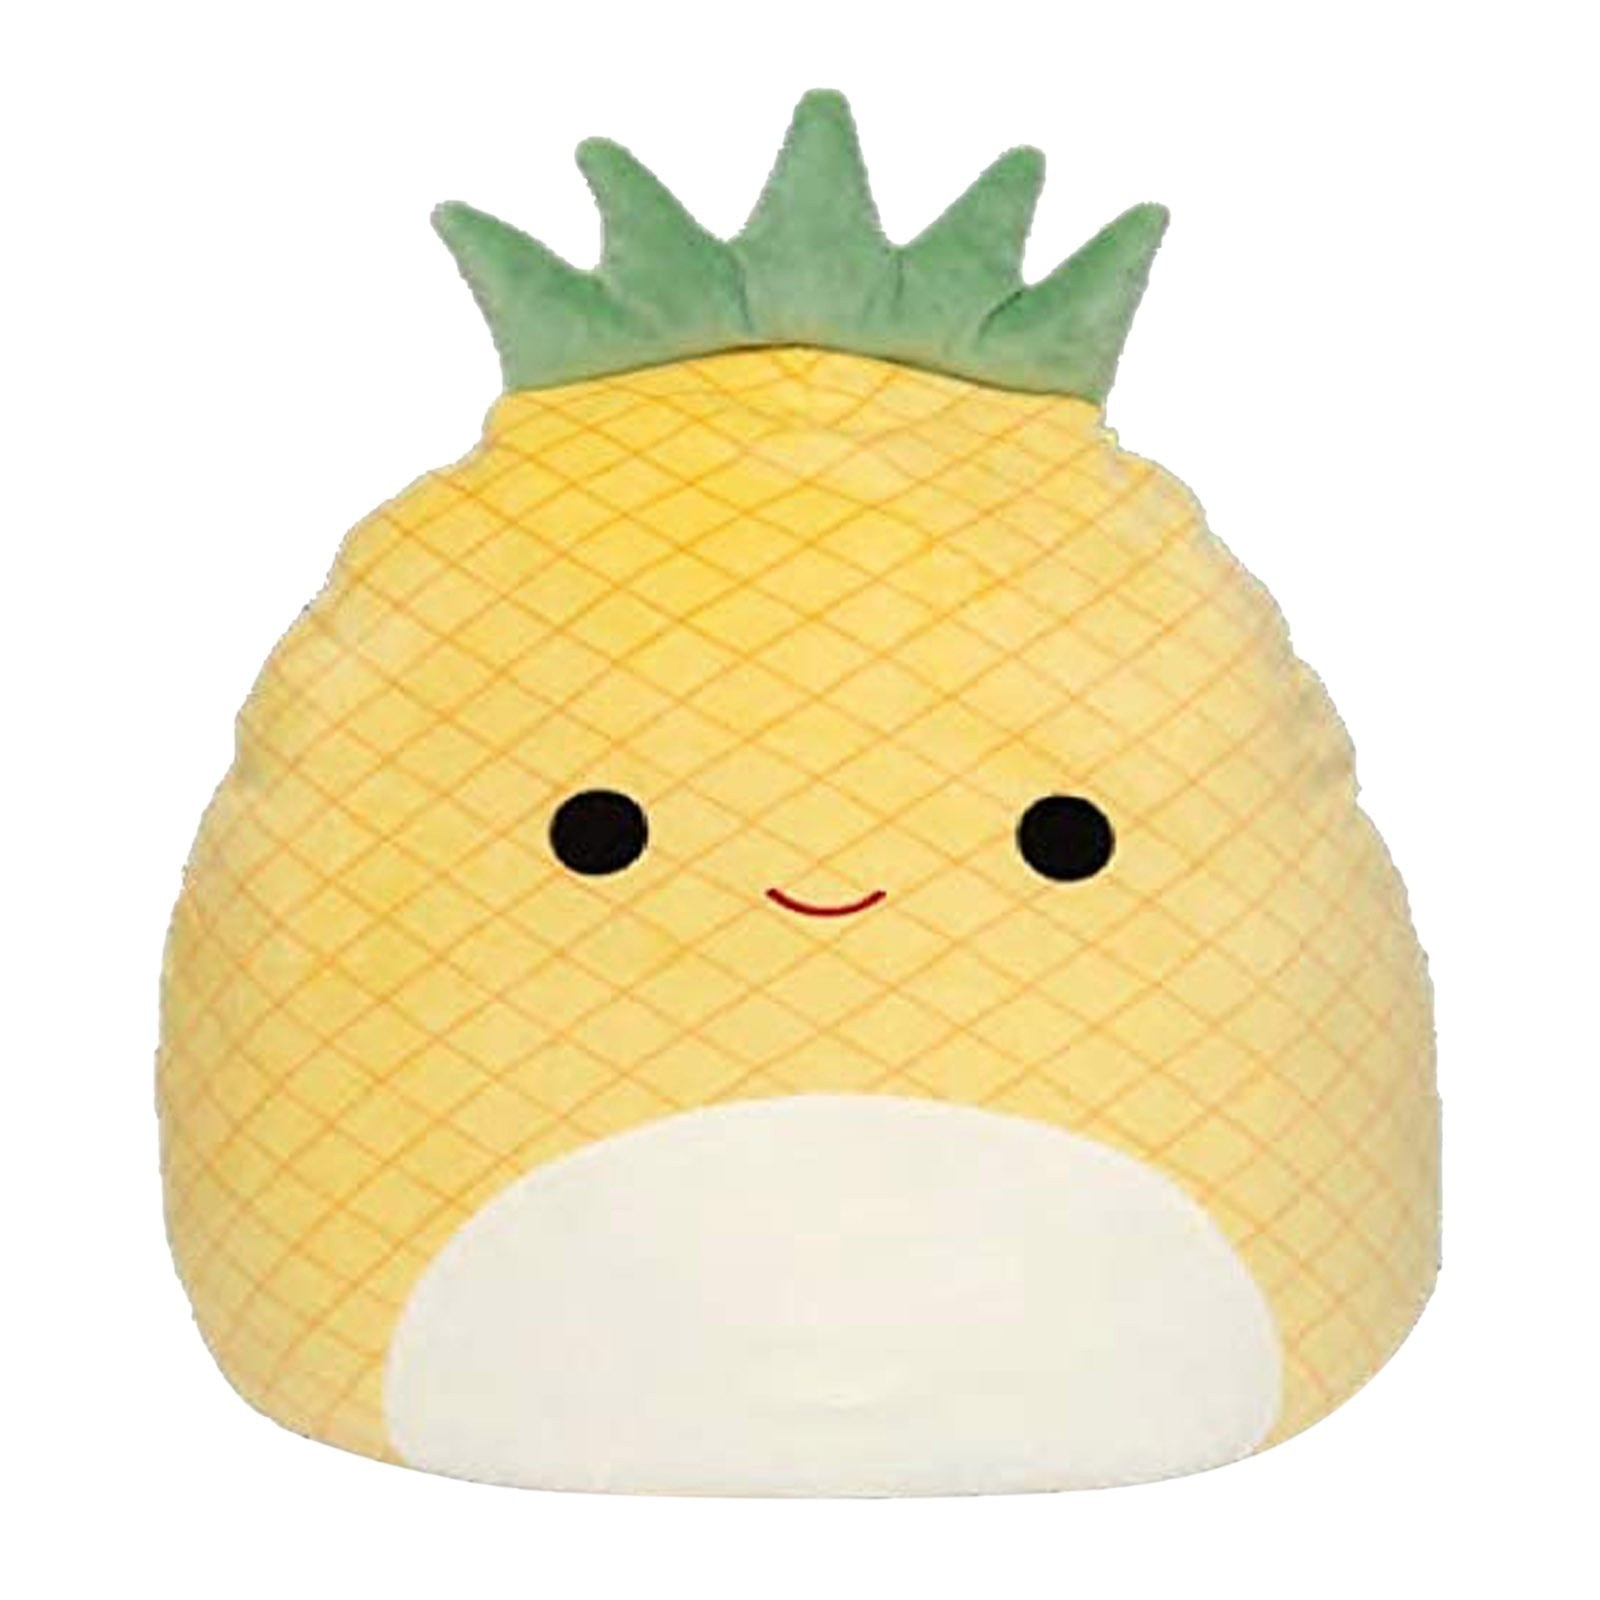 Plush Toys Creative Cute Stuffed Pineapple Toy Ornaments Birthday Gift Pillow Cushion Valentine Gifts мягкие игрушки 5*